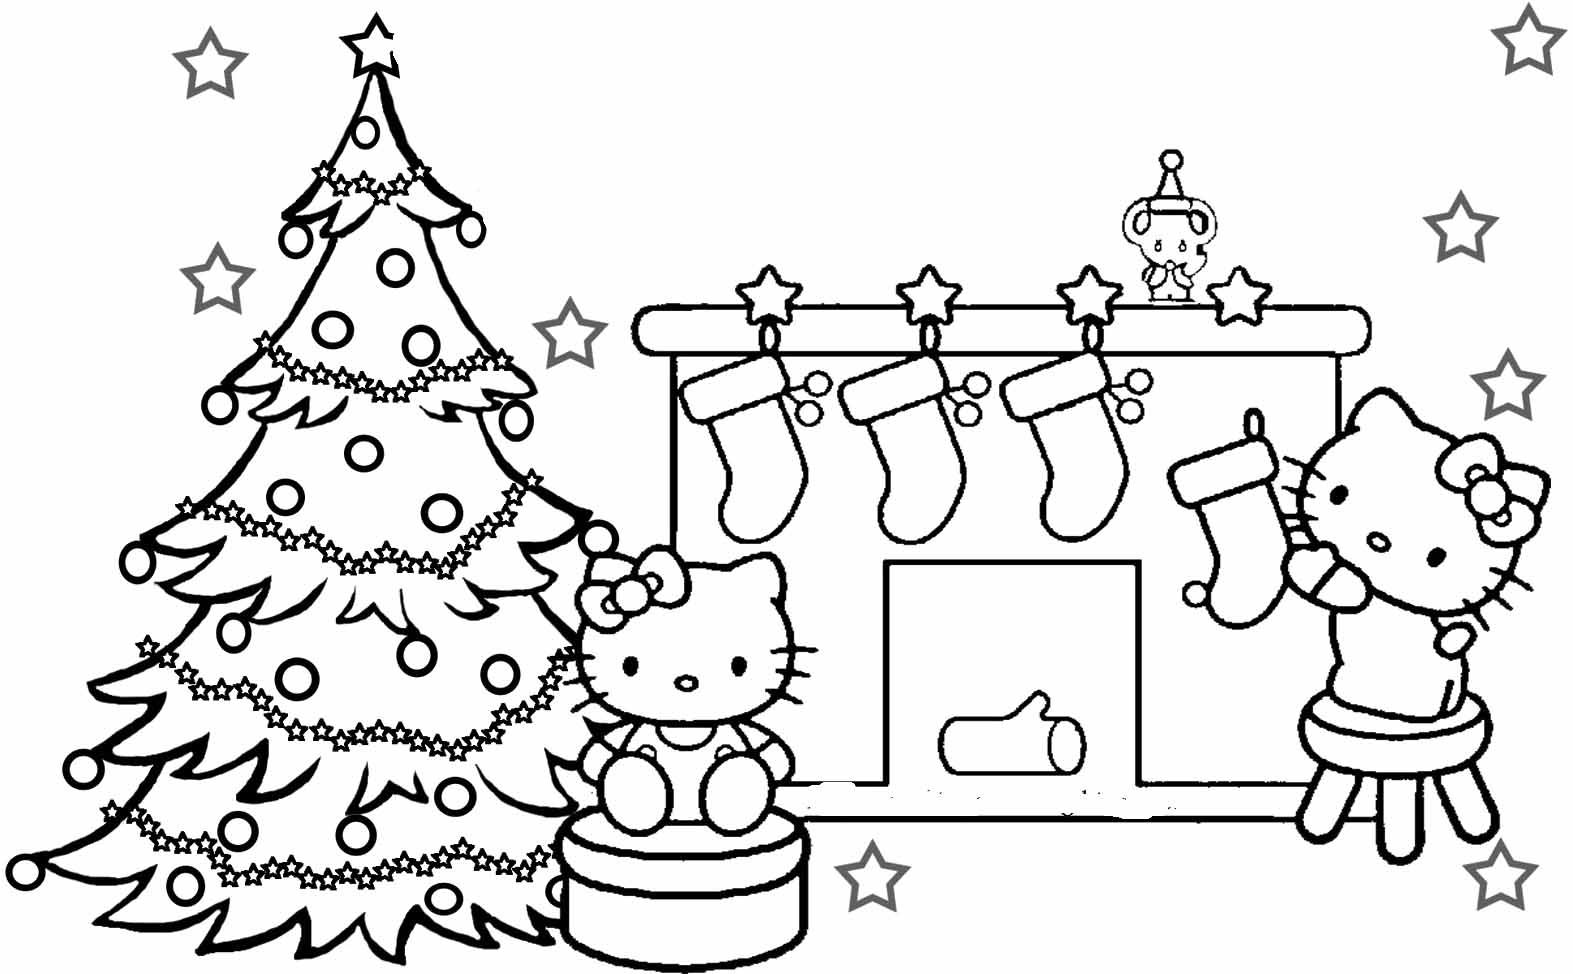 27 Great Picture Of Christmas Coloring Pages To Print Free Entitlementtrap Com Hello Kitty Colouring Pages Hello Kitty Coloring Printable Christmas Coloring Pages